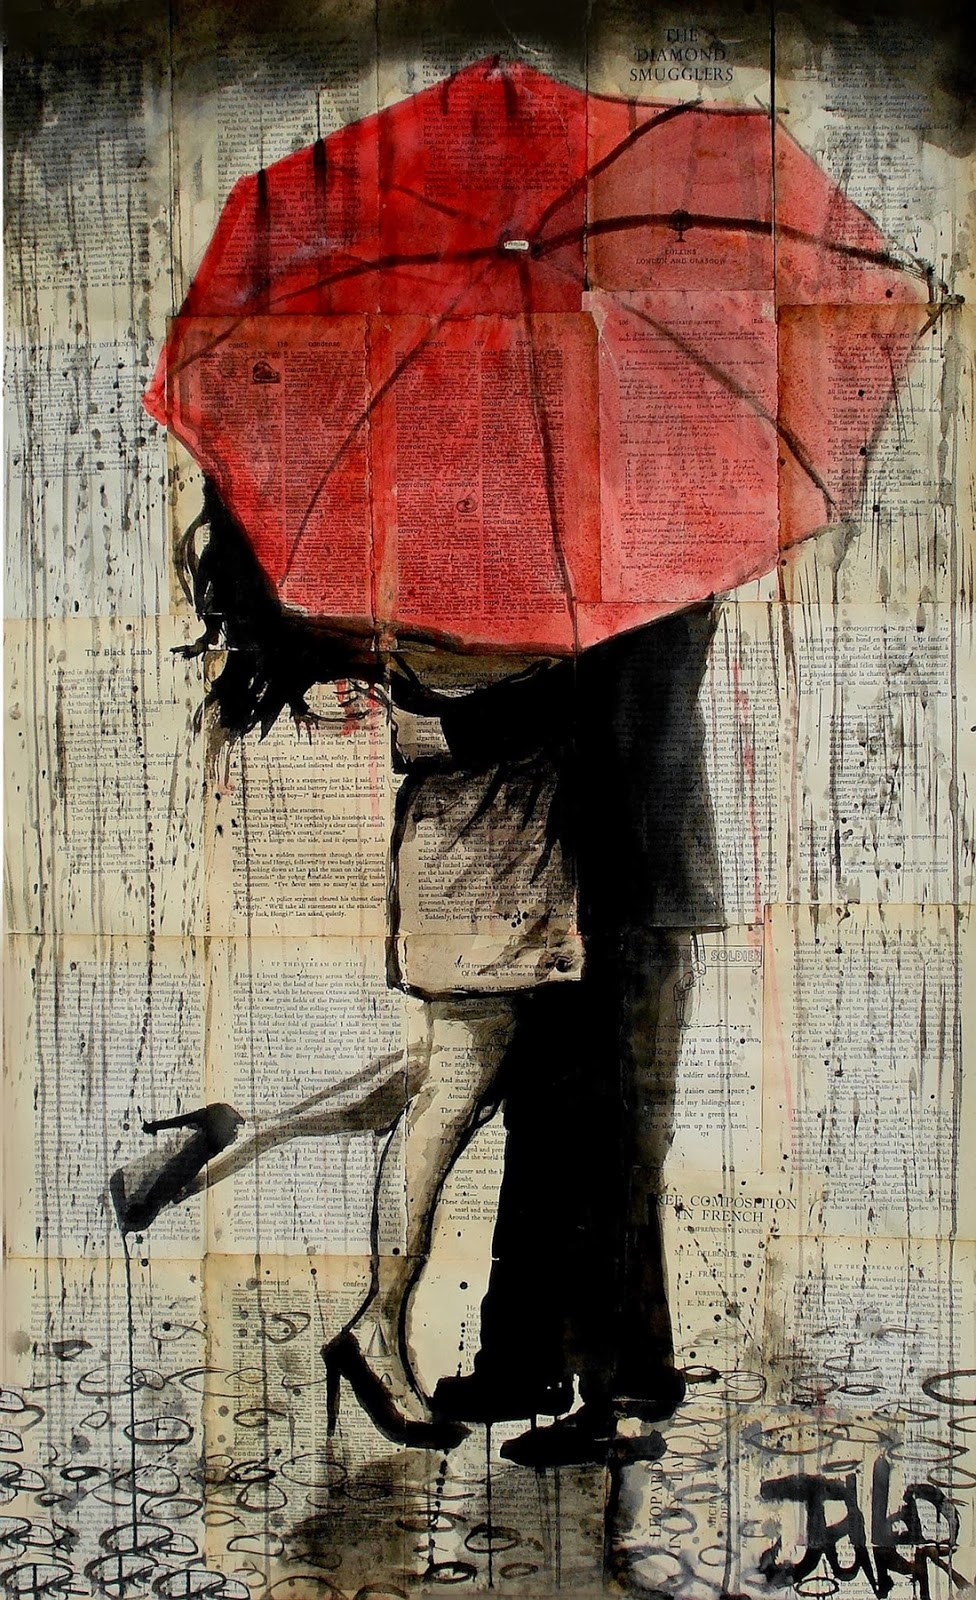 Loui jover 1967 abstract surrealist painter tutt 39 art for Painting red umbrella